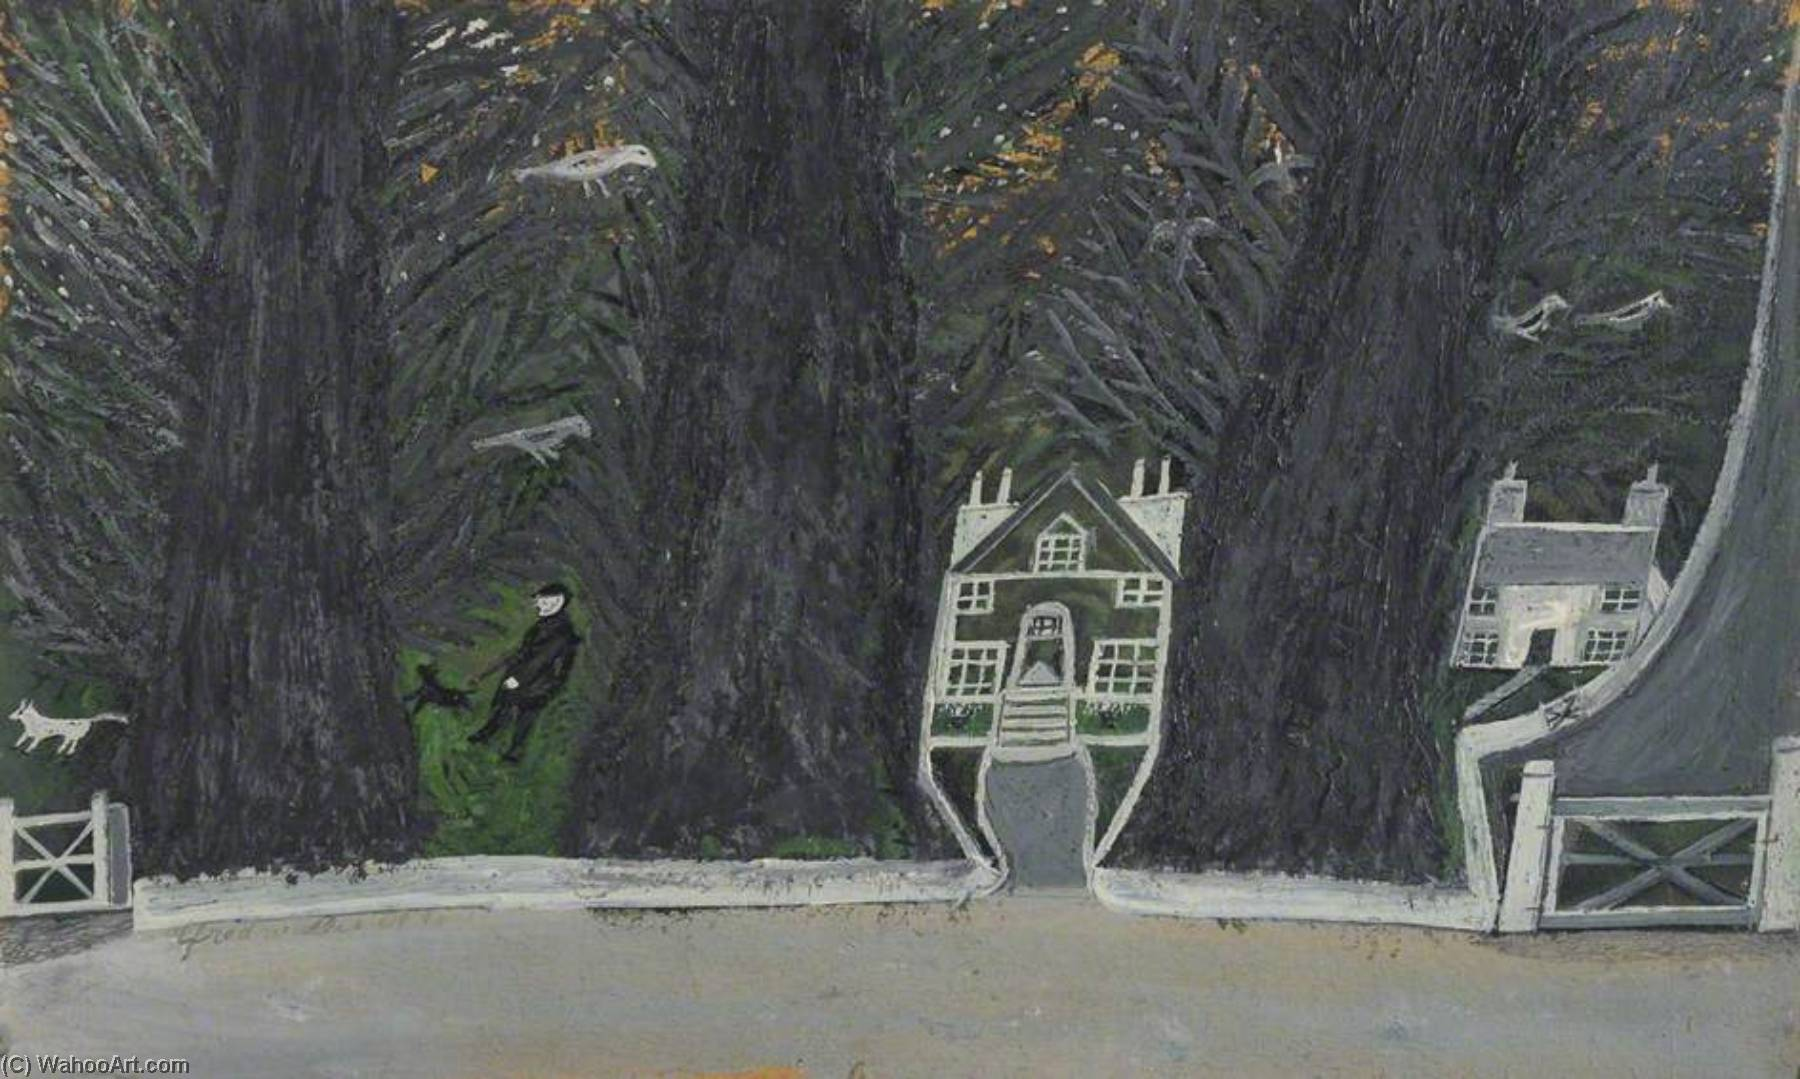 Cottages in a Wood, St Ives, 1937 by Alfred Wallis (1855-1942, United Kingdom) | WahooArt.com